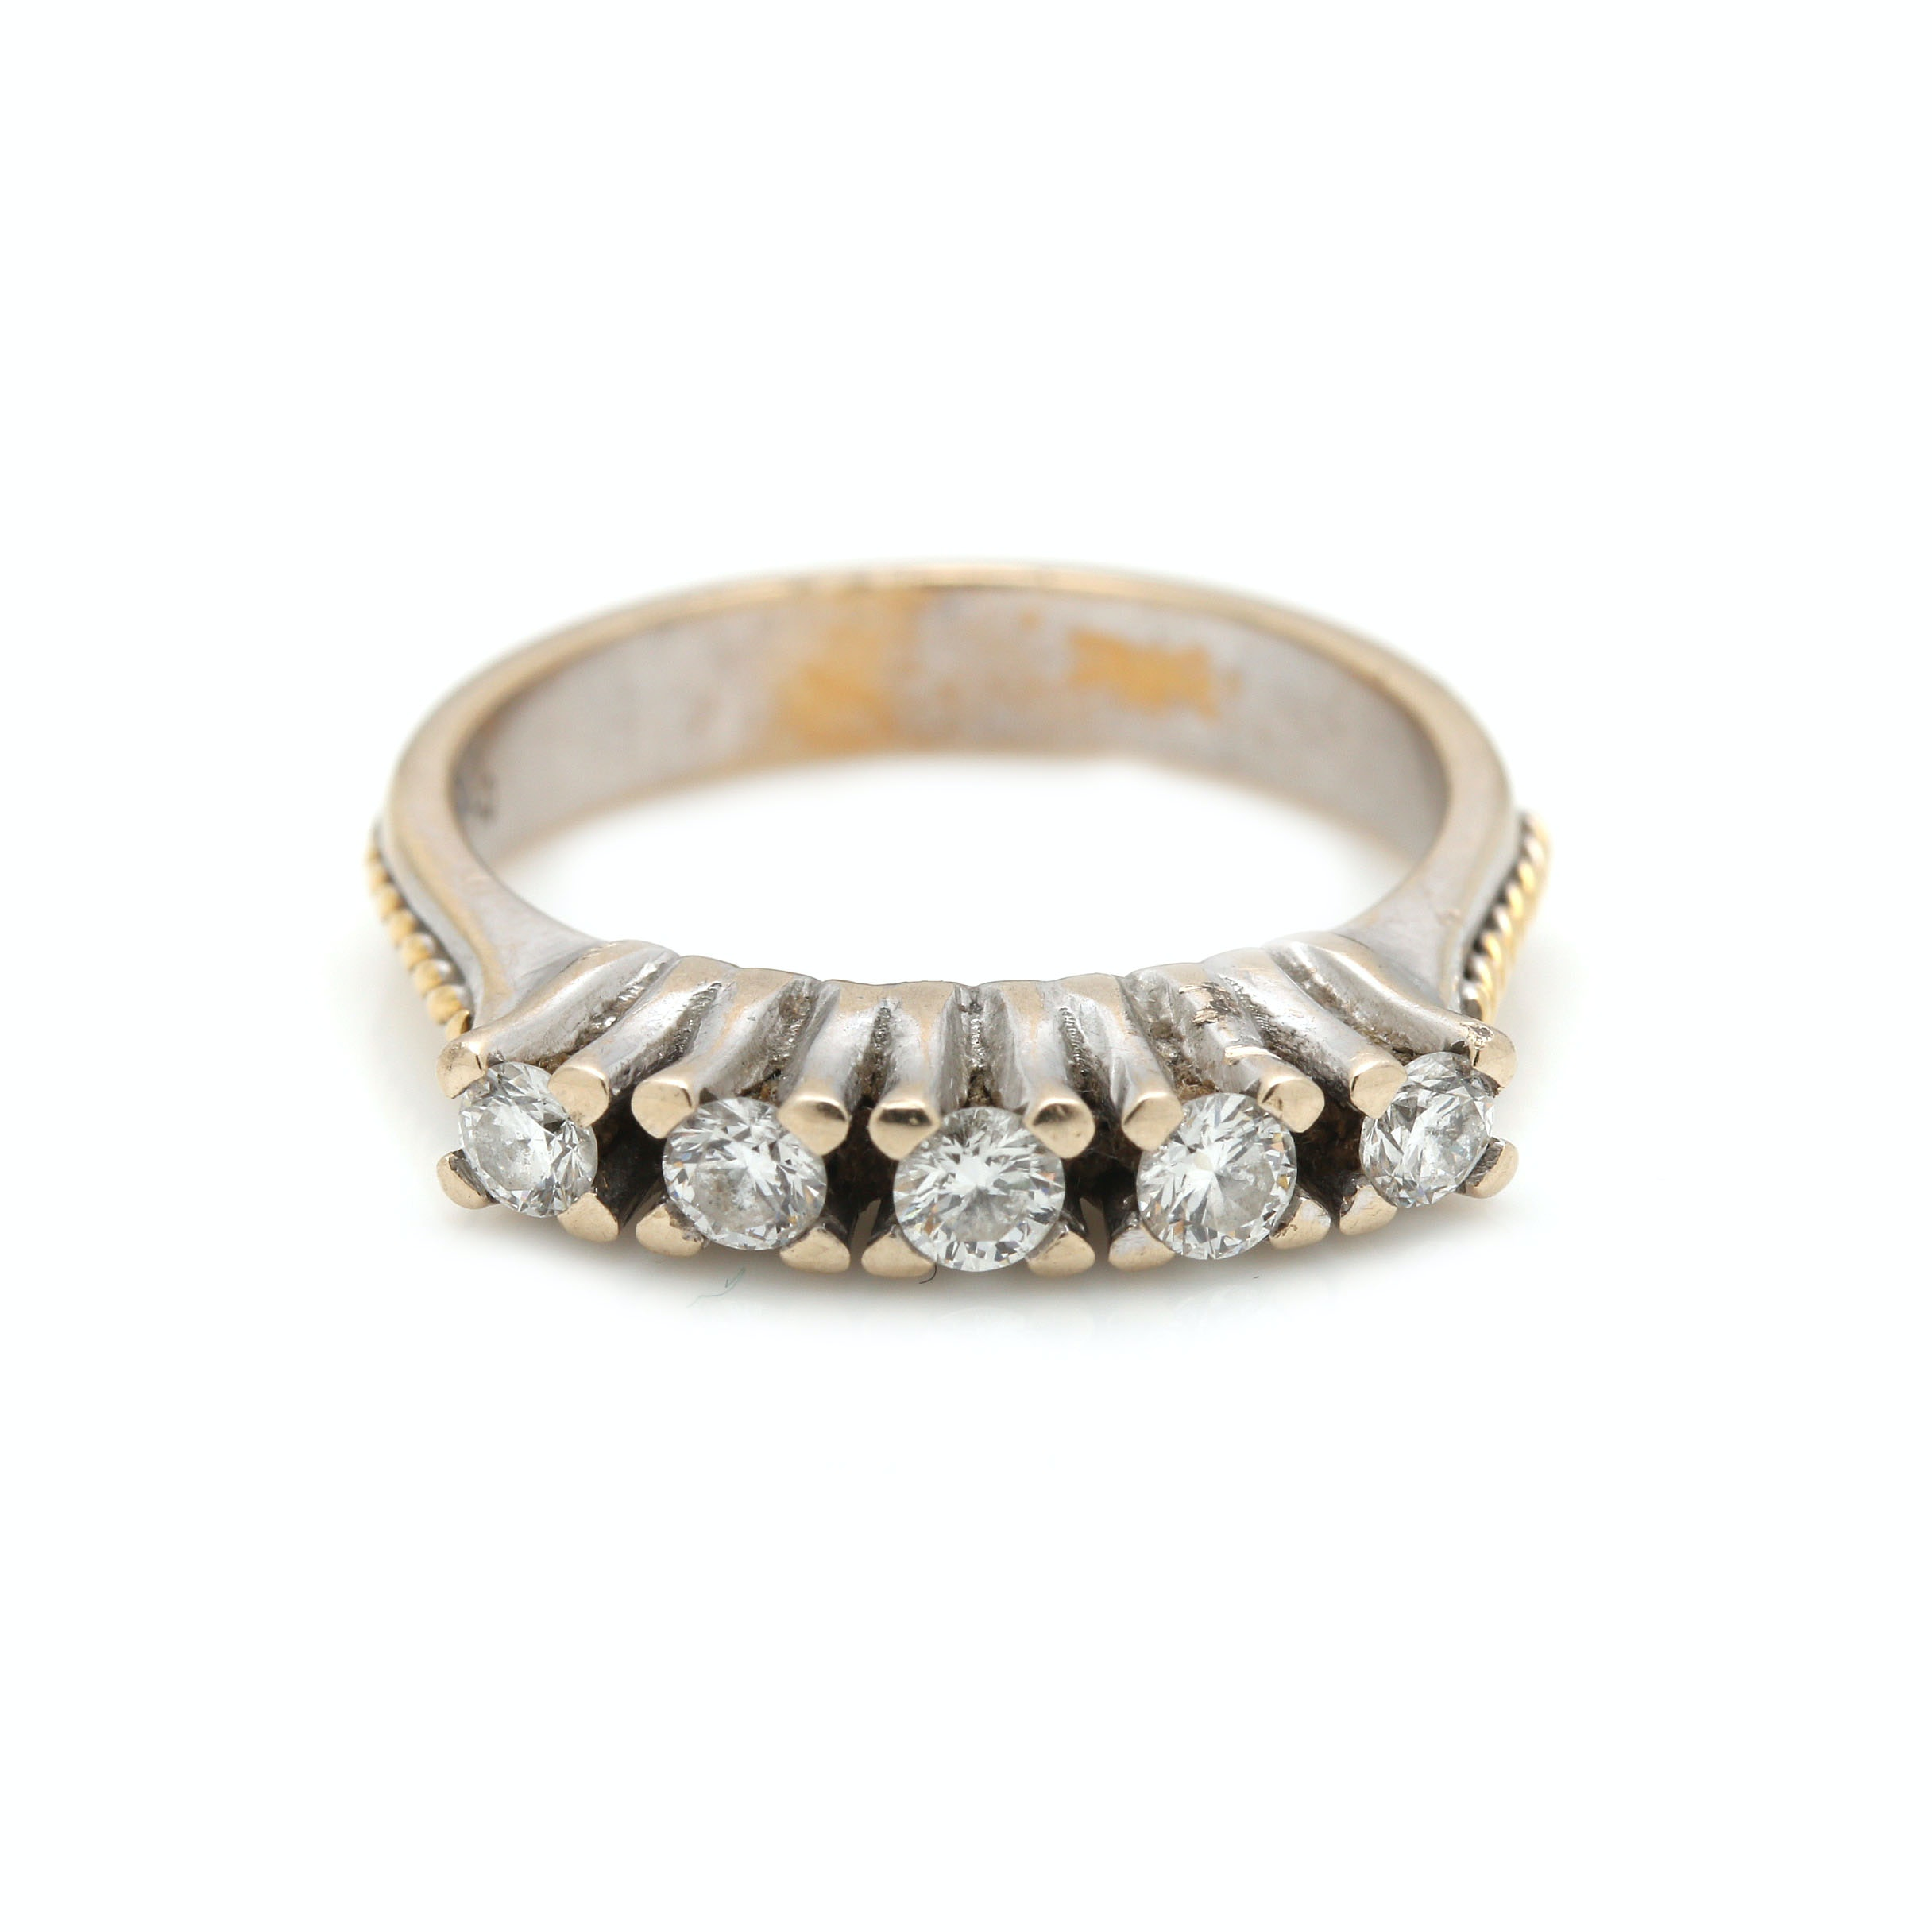 18K White Gold Band Style Diamond Ring With Yellow Gold Accents